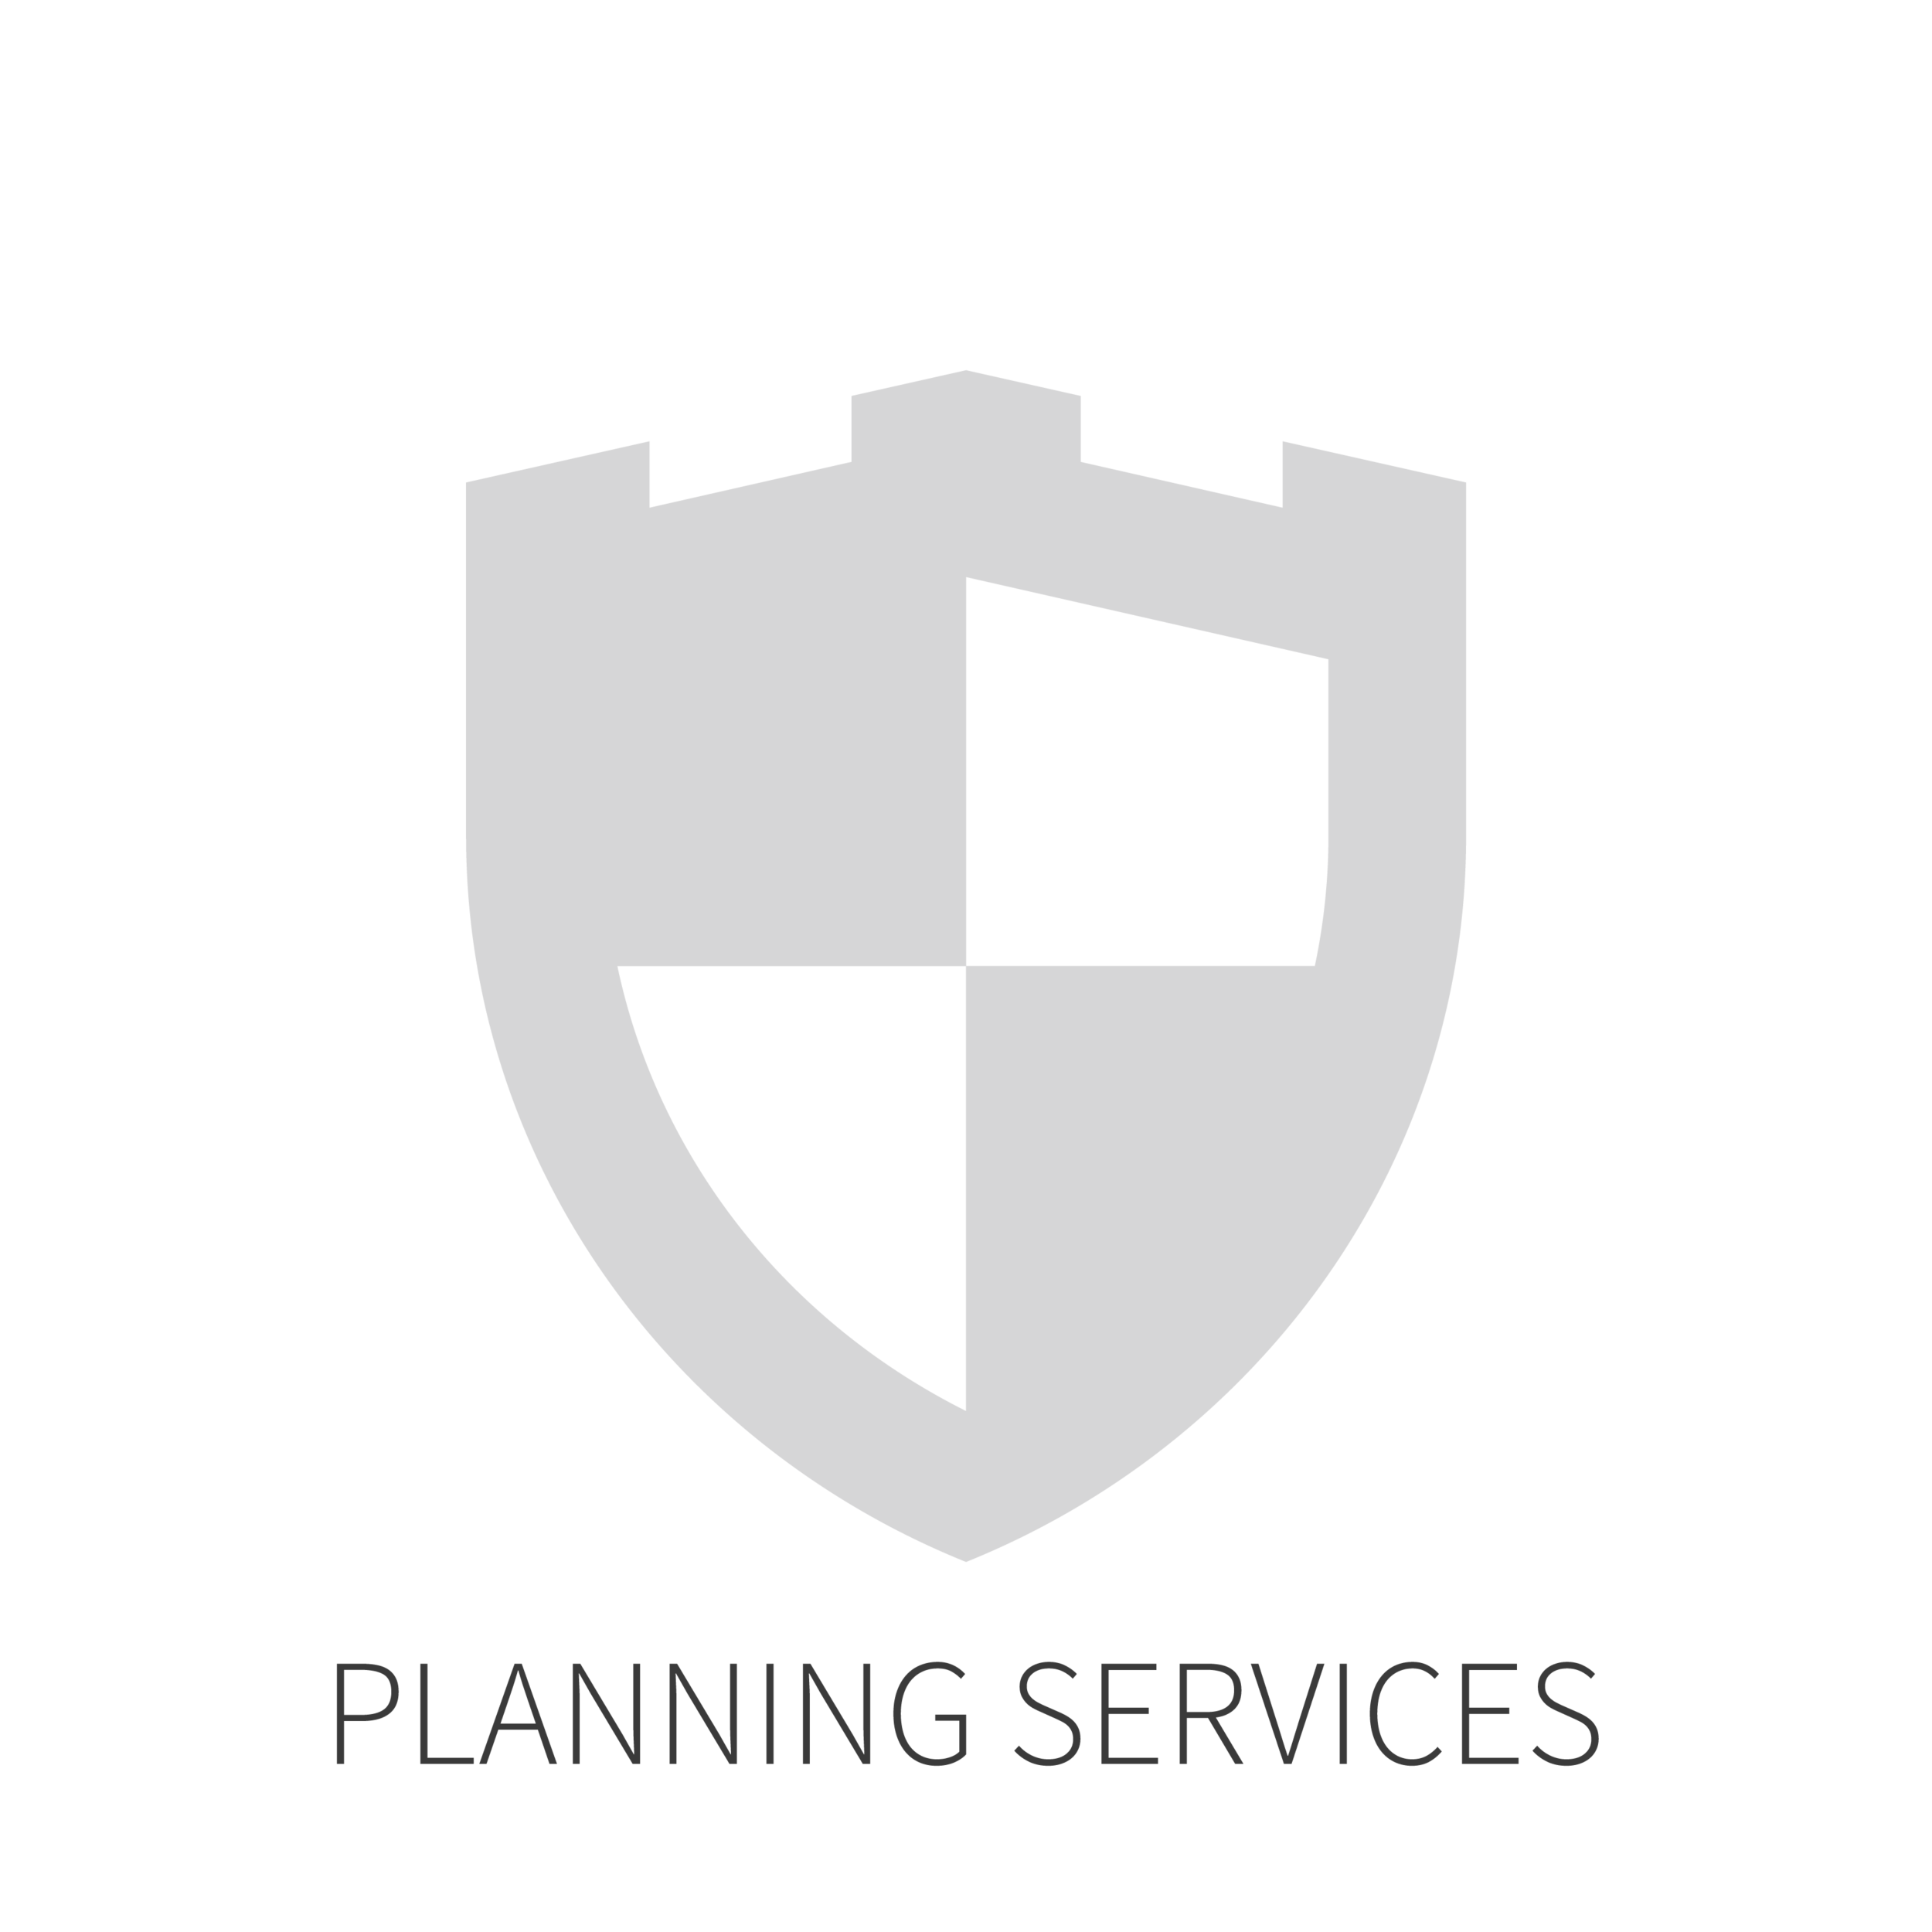 GETSPP_SERVICES_ICONS-01.png